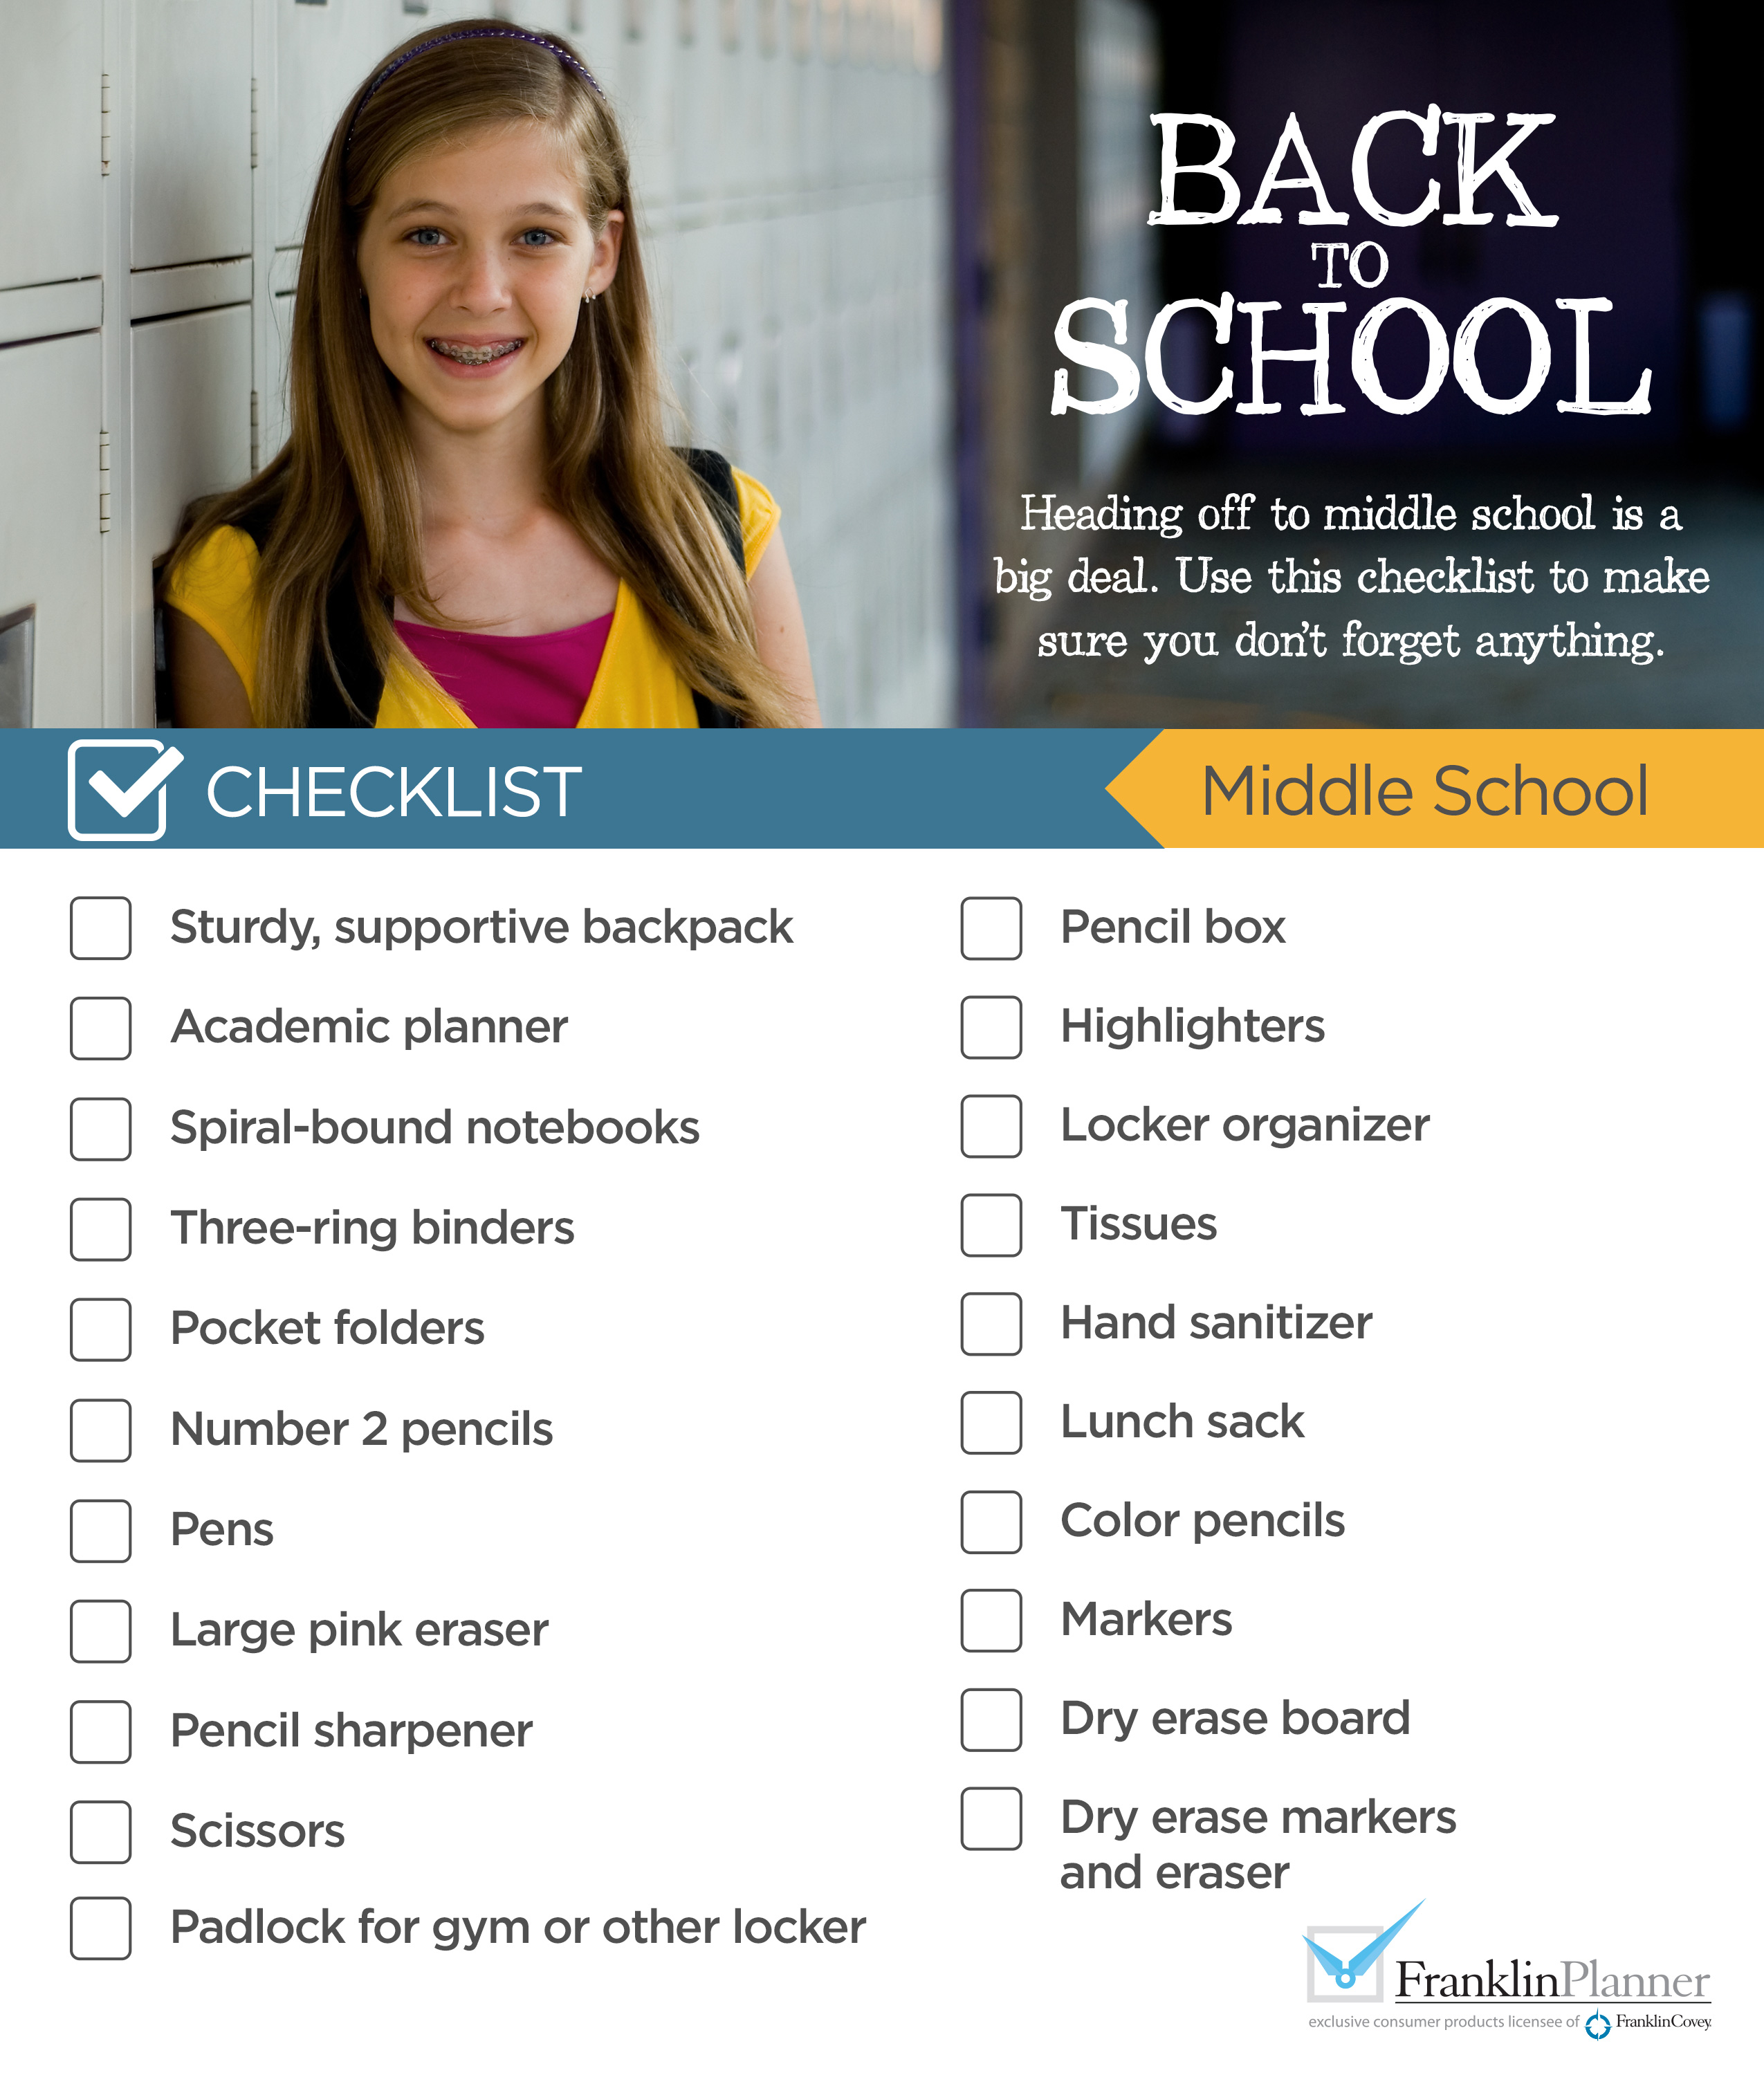 Middle School Checklist